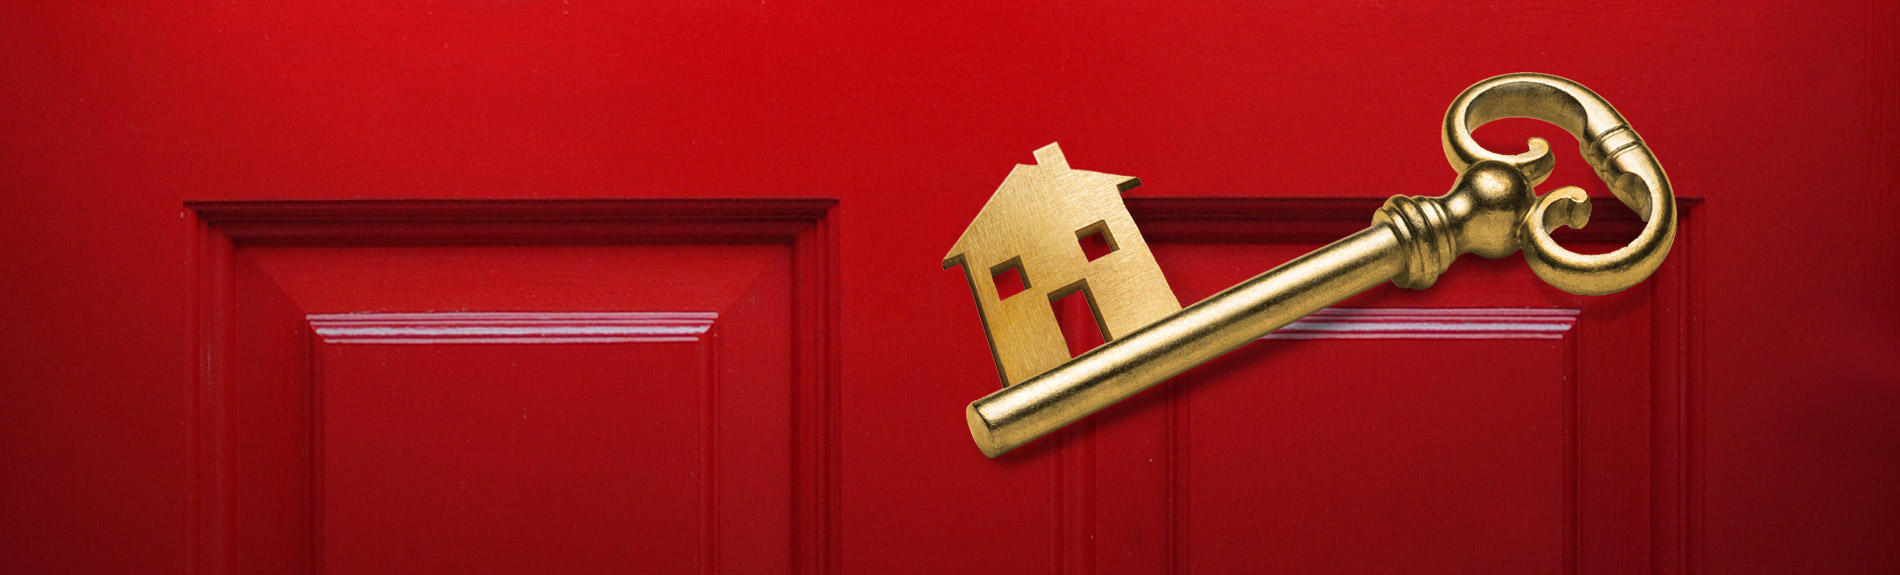 Refinance Your Debt- The Home Mortgage Centre